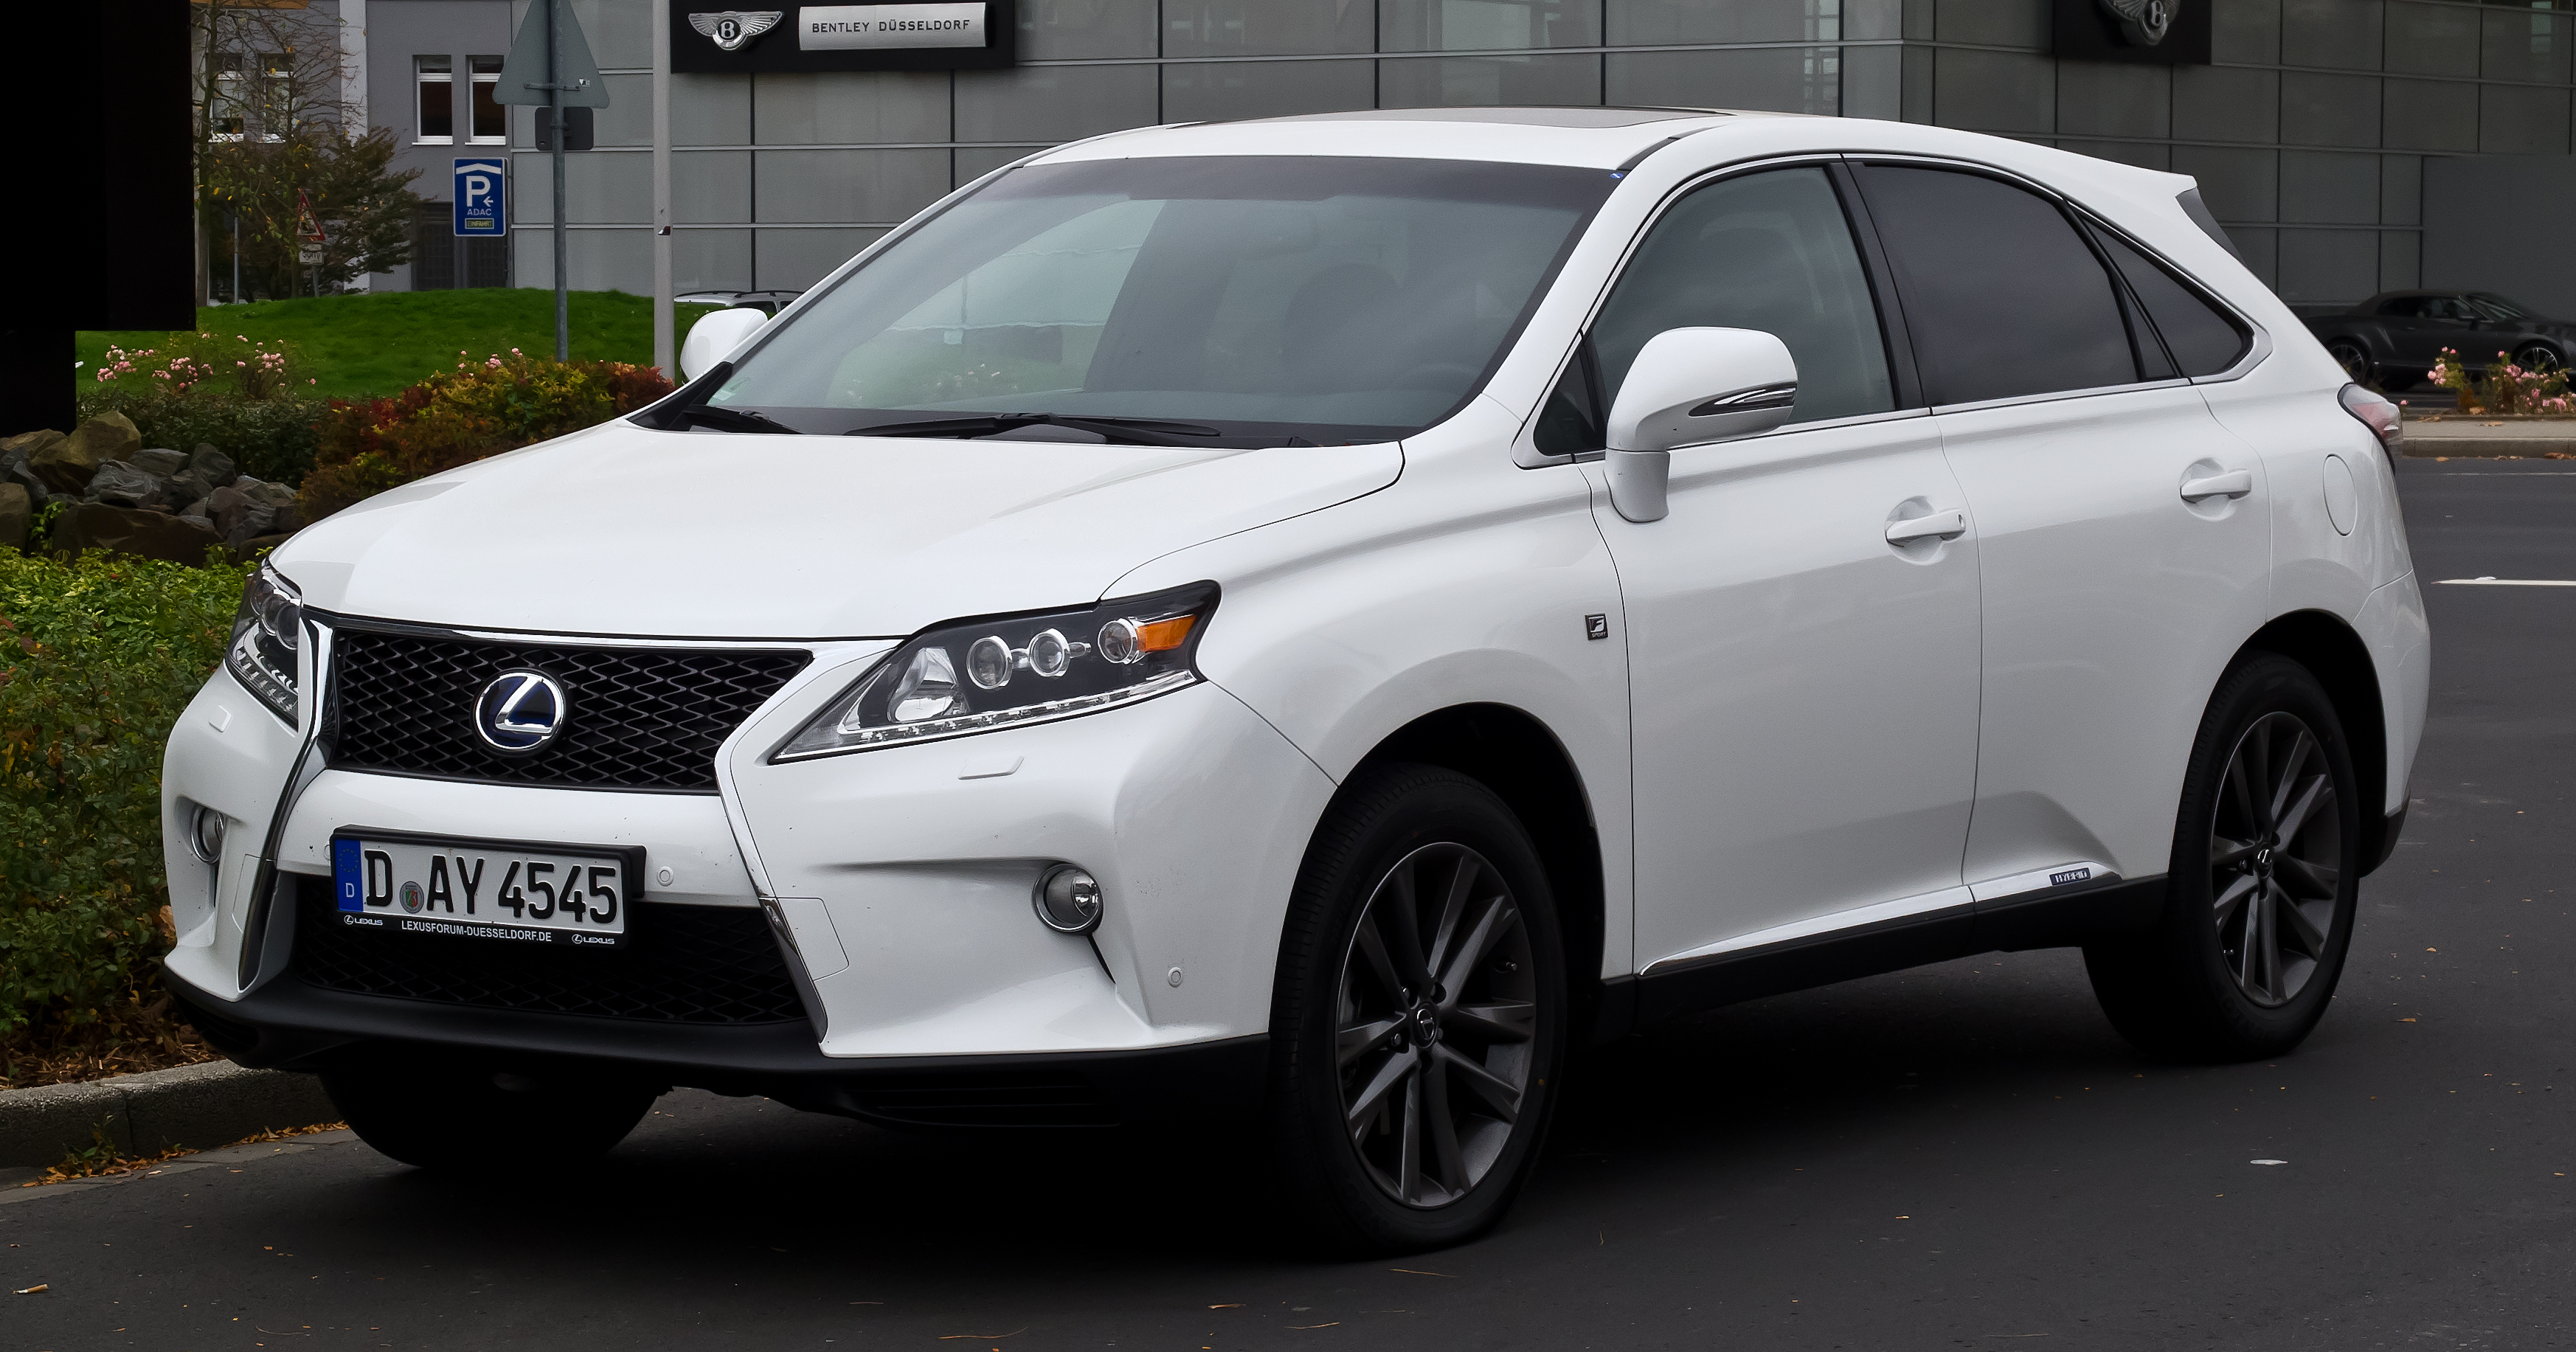 2017 lexus rx 450h f sport car photos catalog 2019. Black Bedroom Furniture Sets. Home Design Ideas